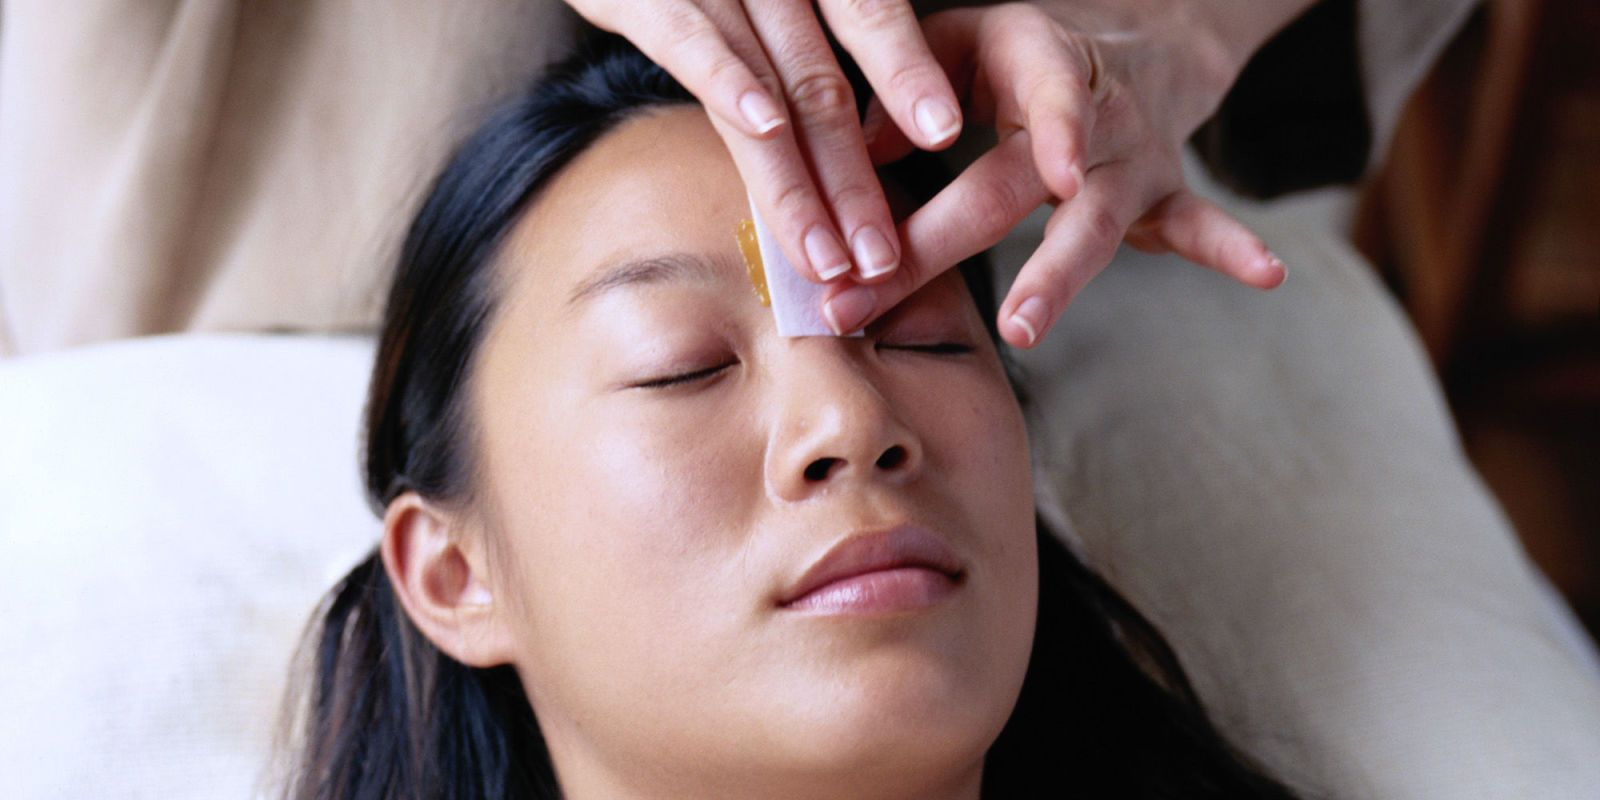 Teen young massive cock